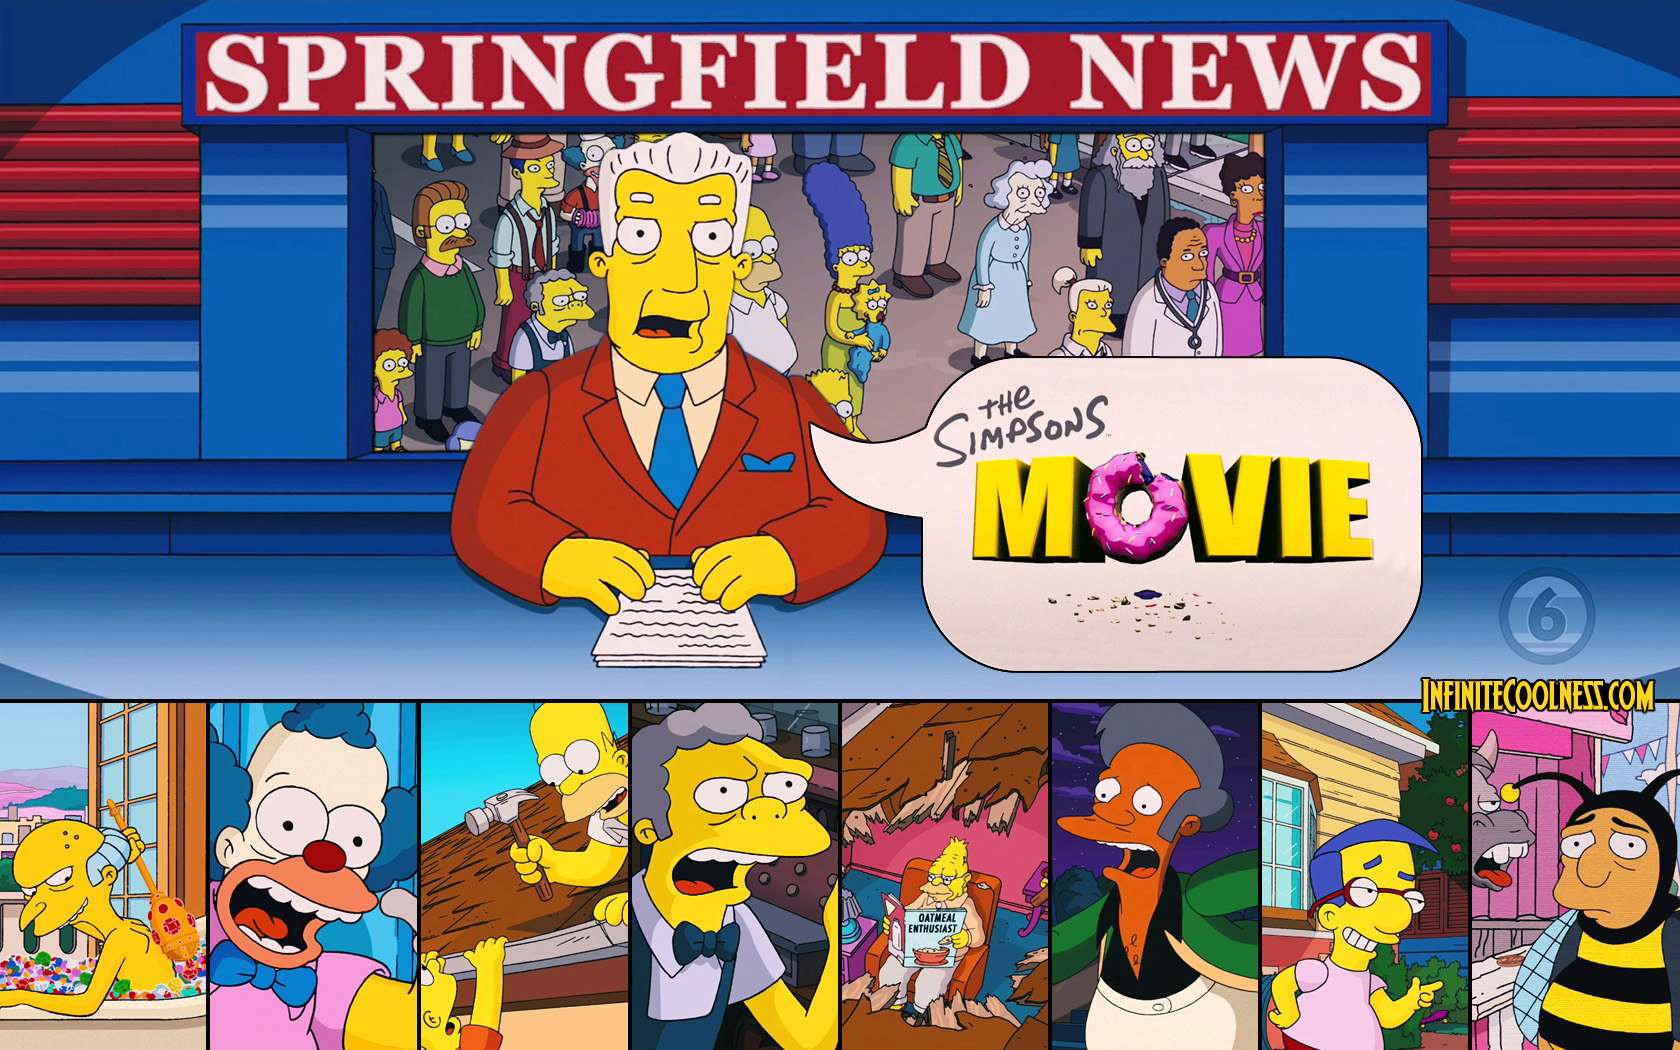 Free Download The Simpsons Movie The Simpsons Movie Wallpaper 850595 1680x1050 For Your Desktop Mobile Tablet Explore 73 Simpsons Movie Wallpaper Crazy Wallpapers Homer Simpson Wallpaper Bart Simpson Wallpaper